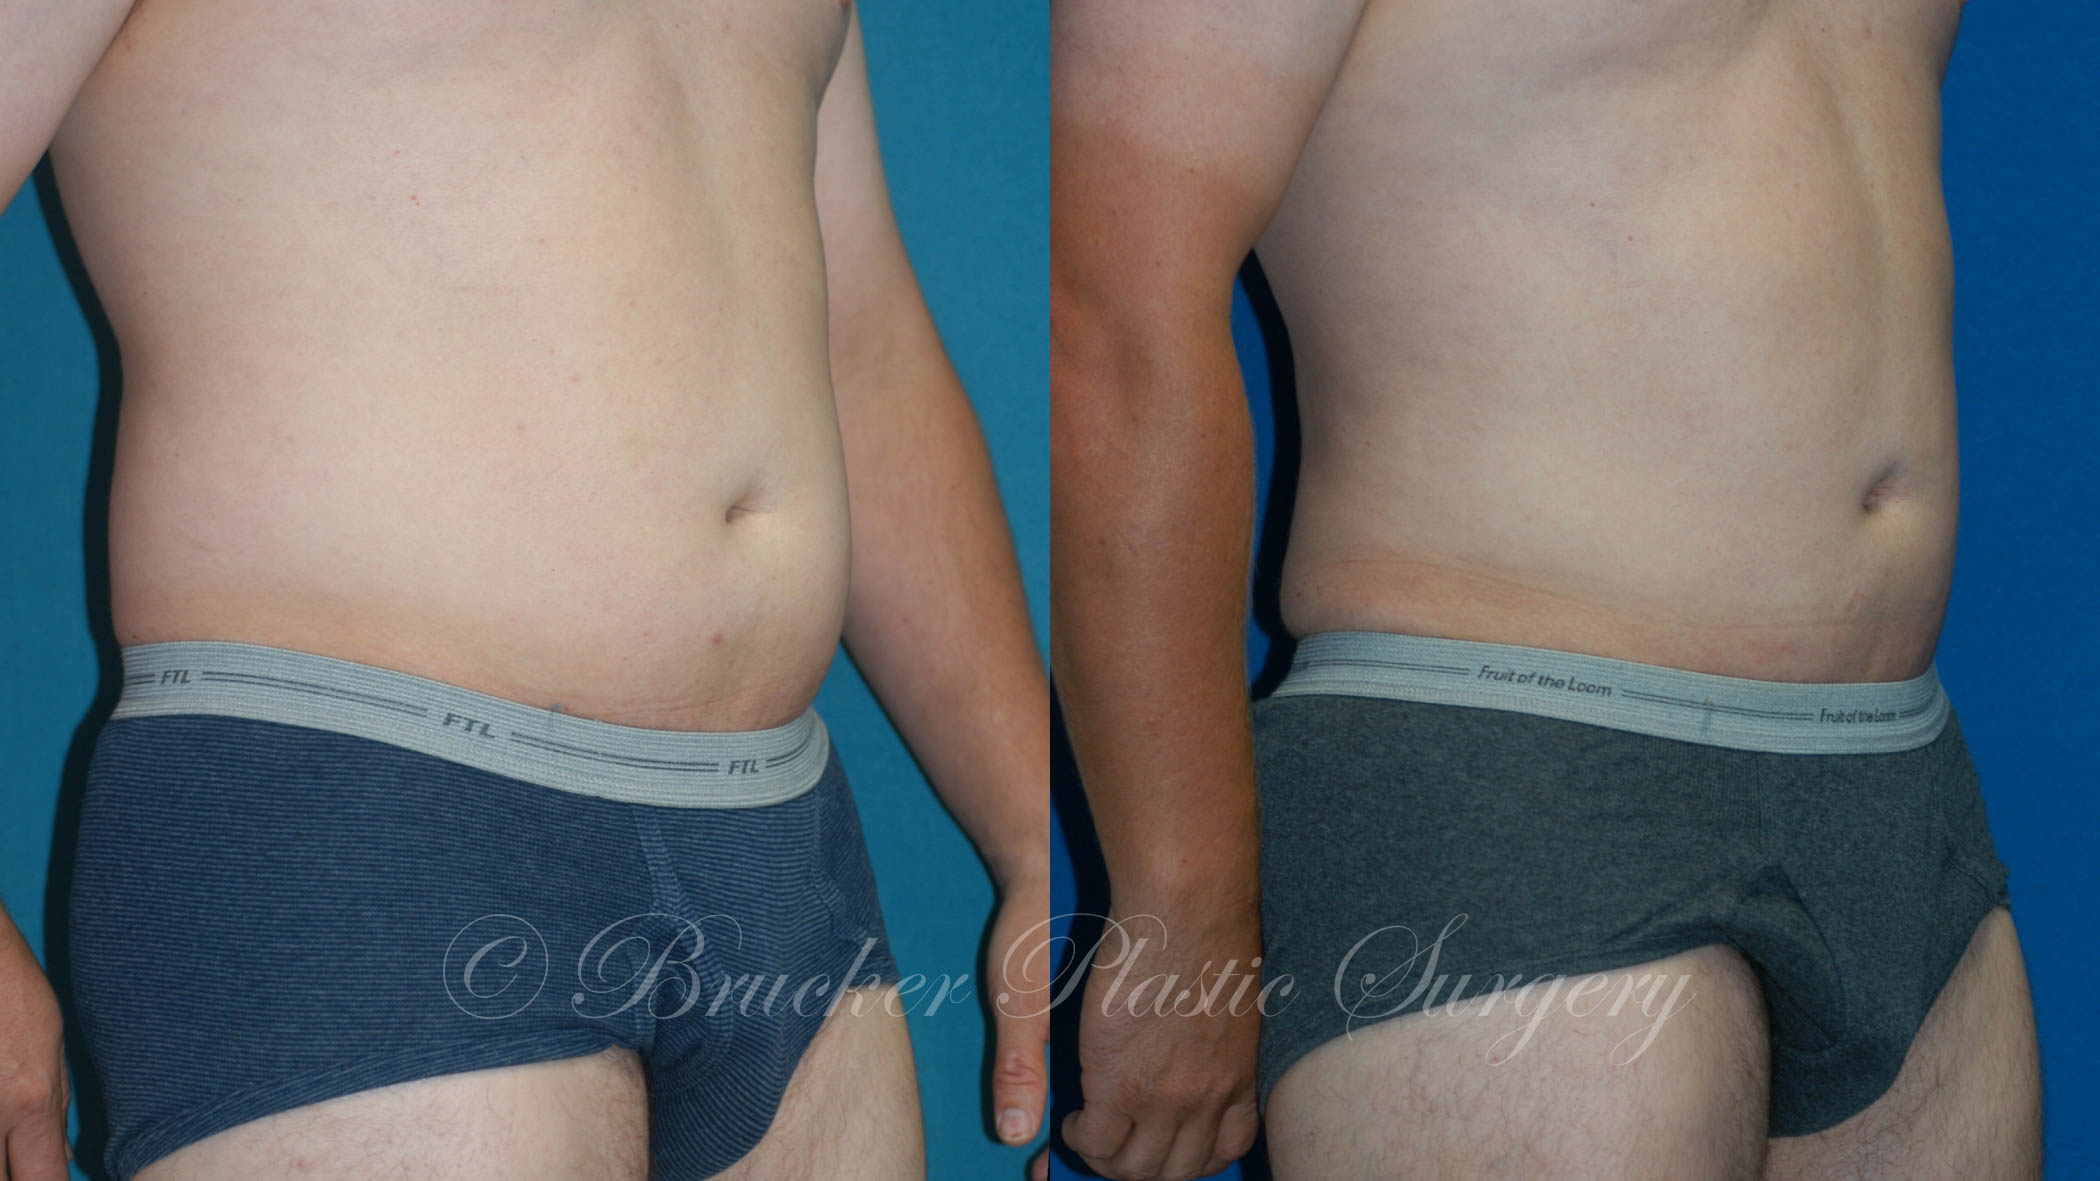 Liposuction La Jolla Patient 1.1